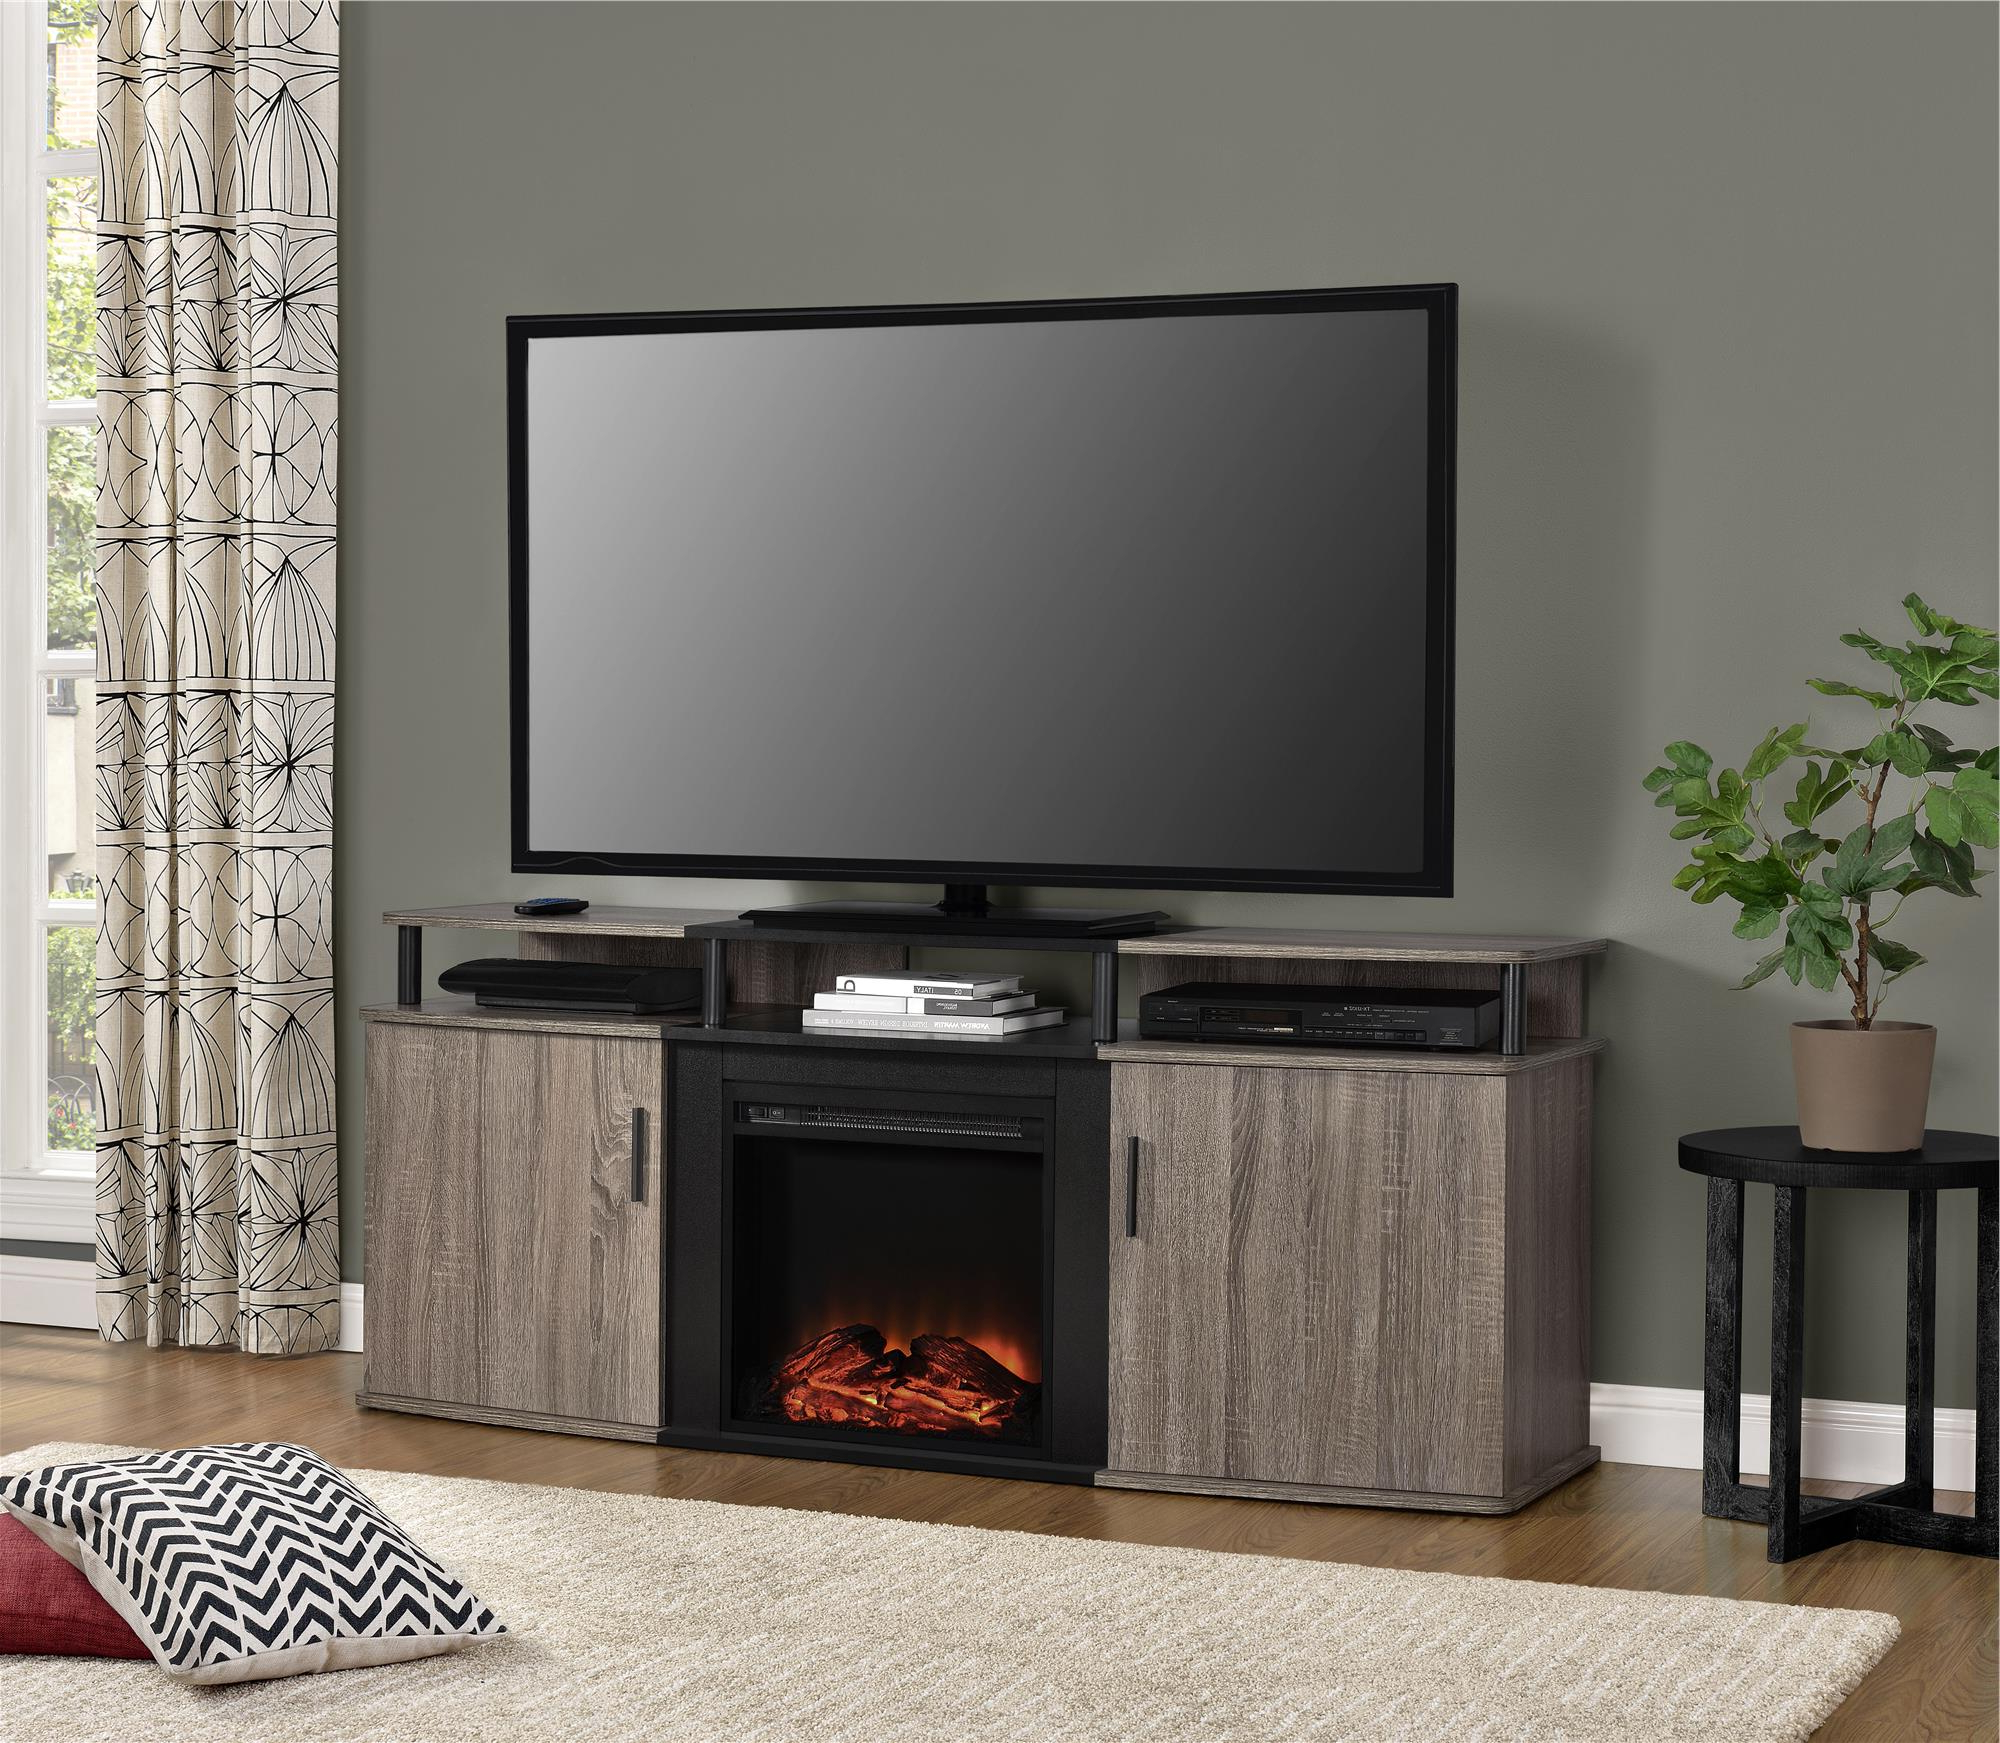 """Latest Ameriwood Home Carson Electric Fireplace Tv Console For In Chicago Tv Stands For Tvs Up To 70"""" With Fireplace Included (View 24 of 25)"""